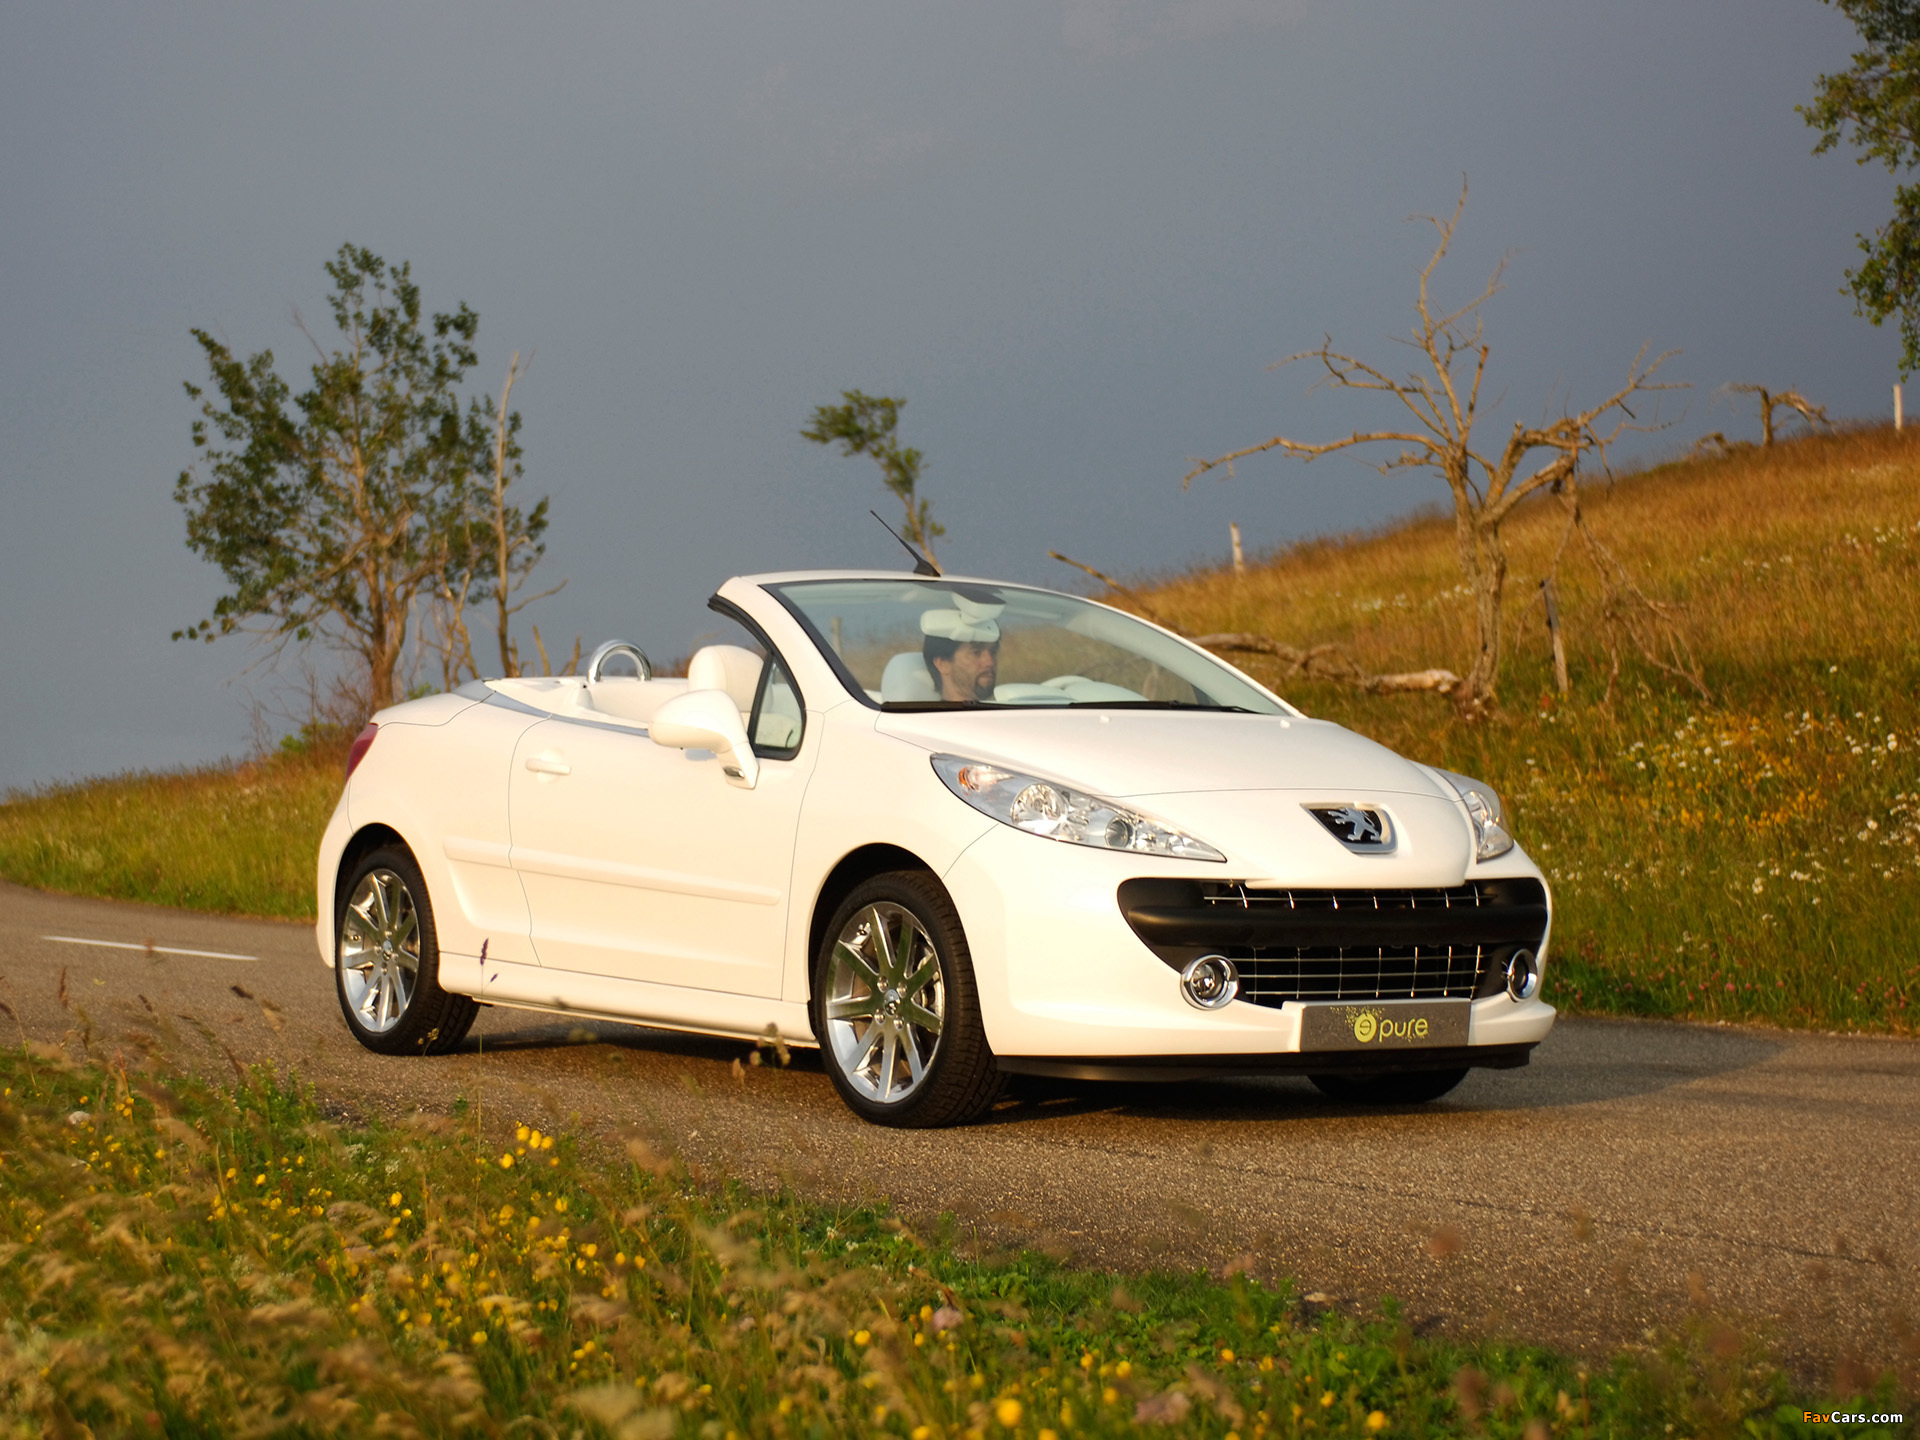 Peugeot 207 Epure Concept 2006 wallpapers (1920 x 1440)